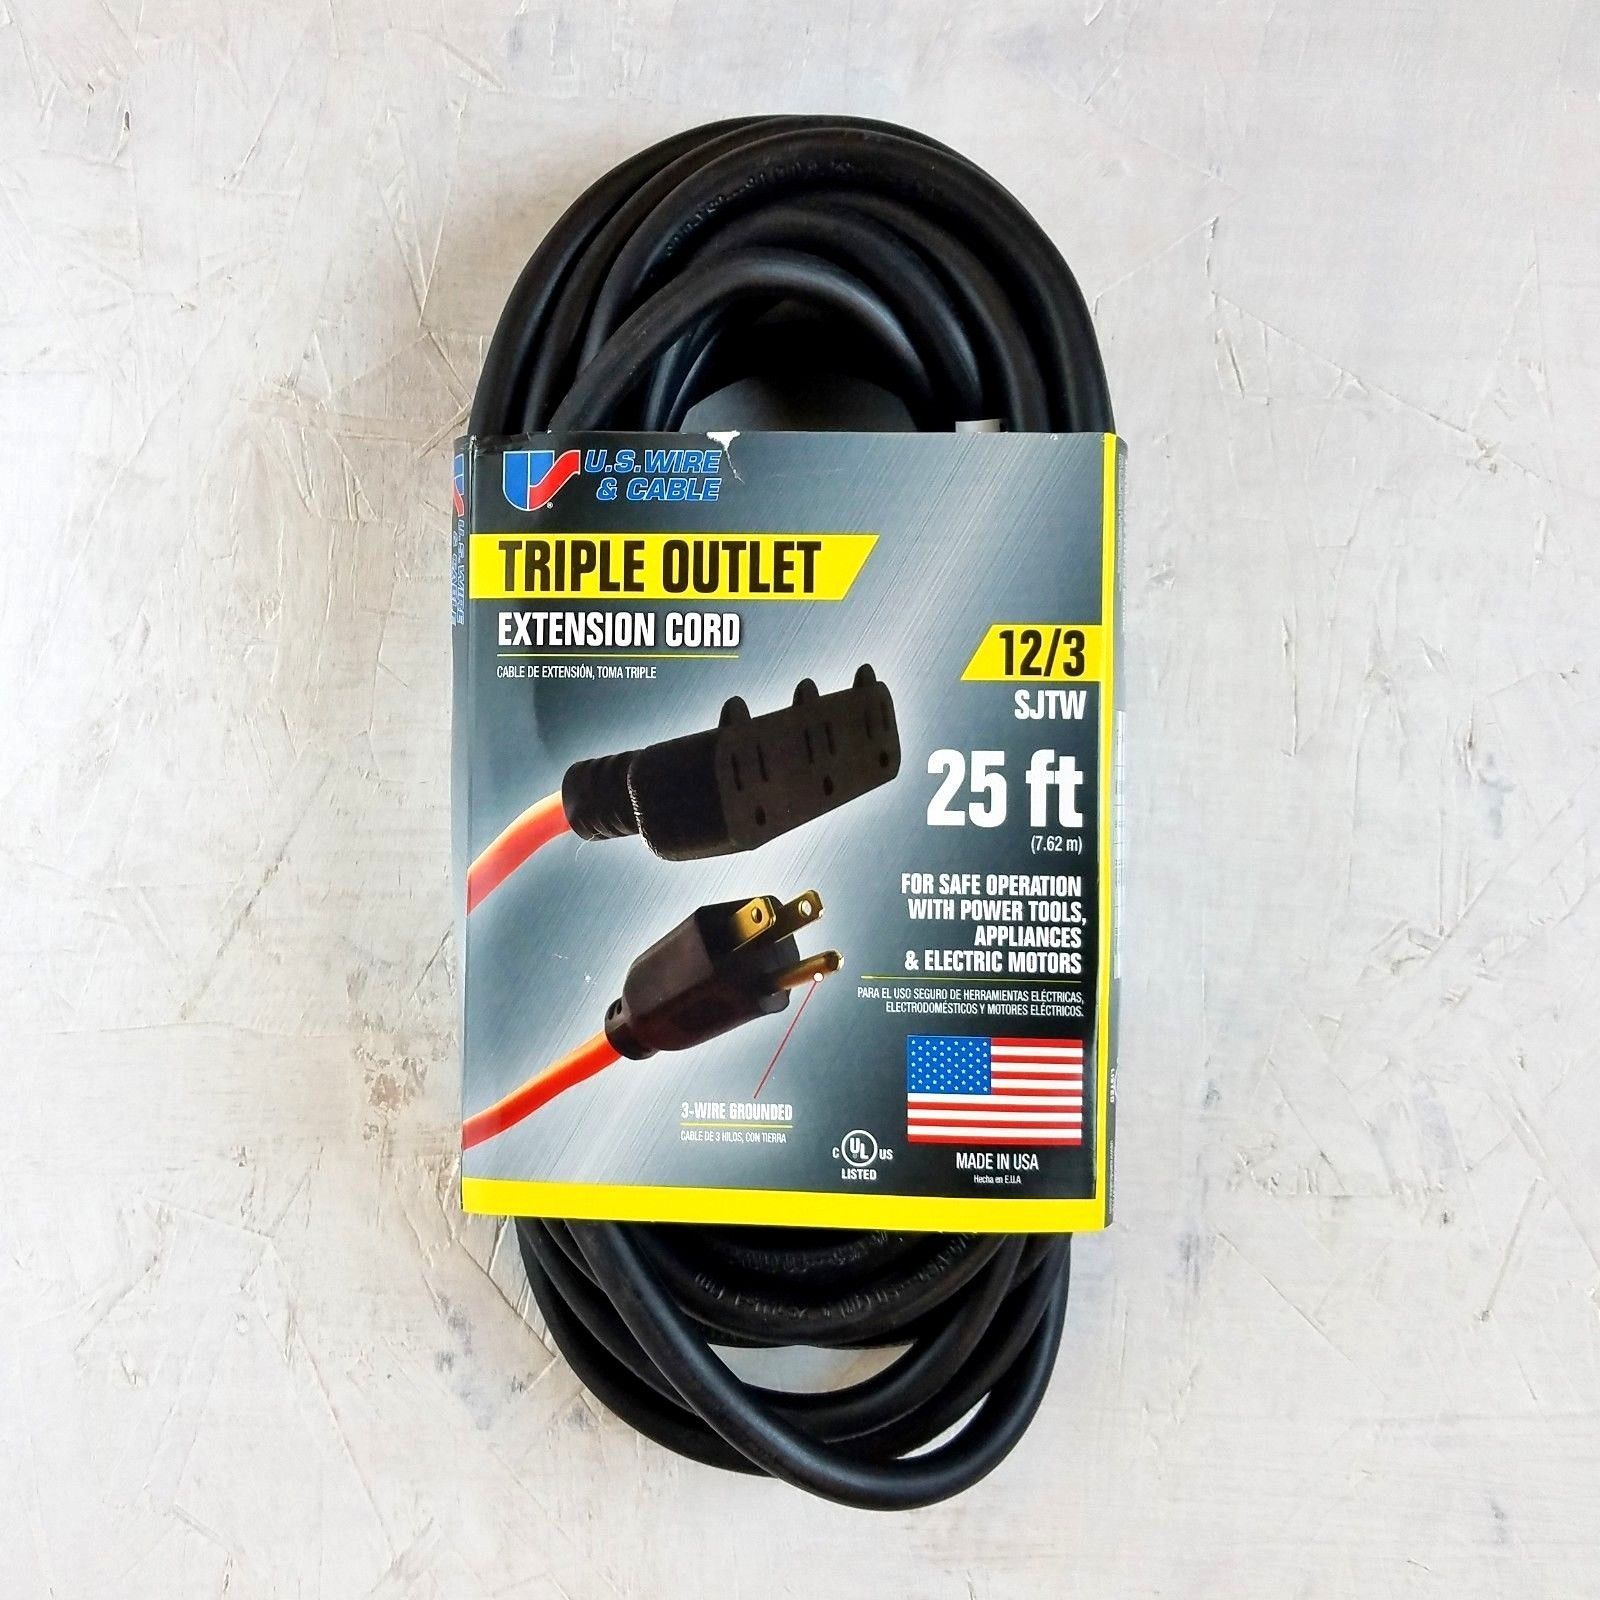 Extension Cords 75577 25 12 Gauge Black Extension Cord W Triple Outlet Made In Usa Buy It Now Only 16 75 On Ebay Extensi Extension Cord Cord 12 Gauge